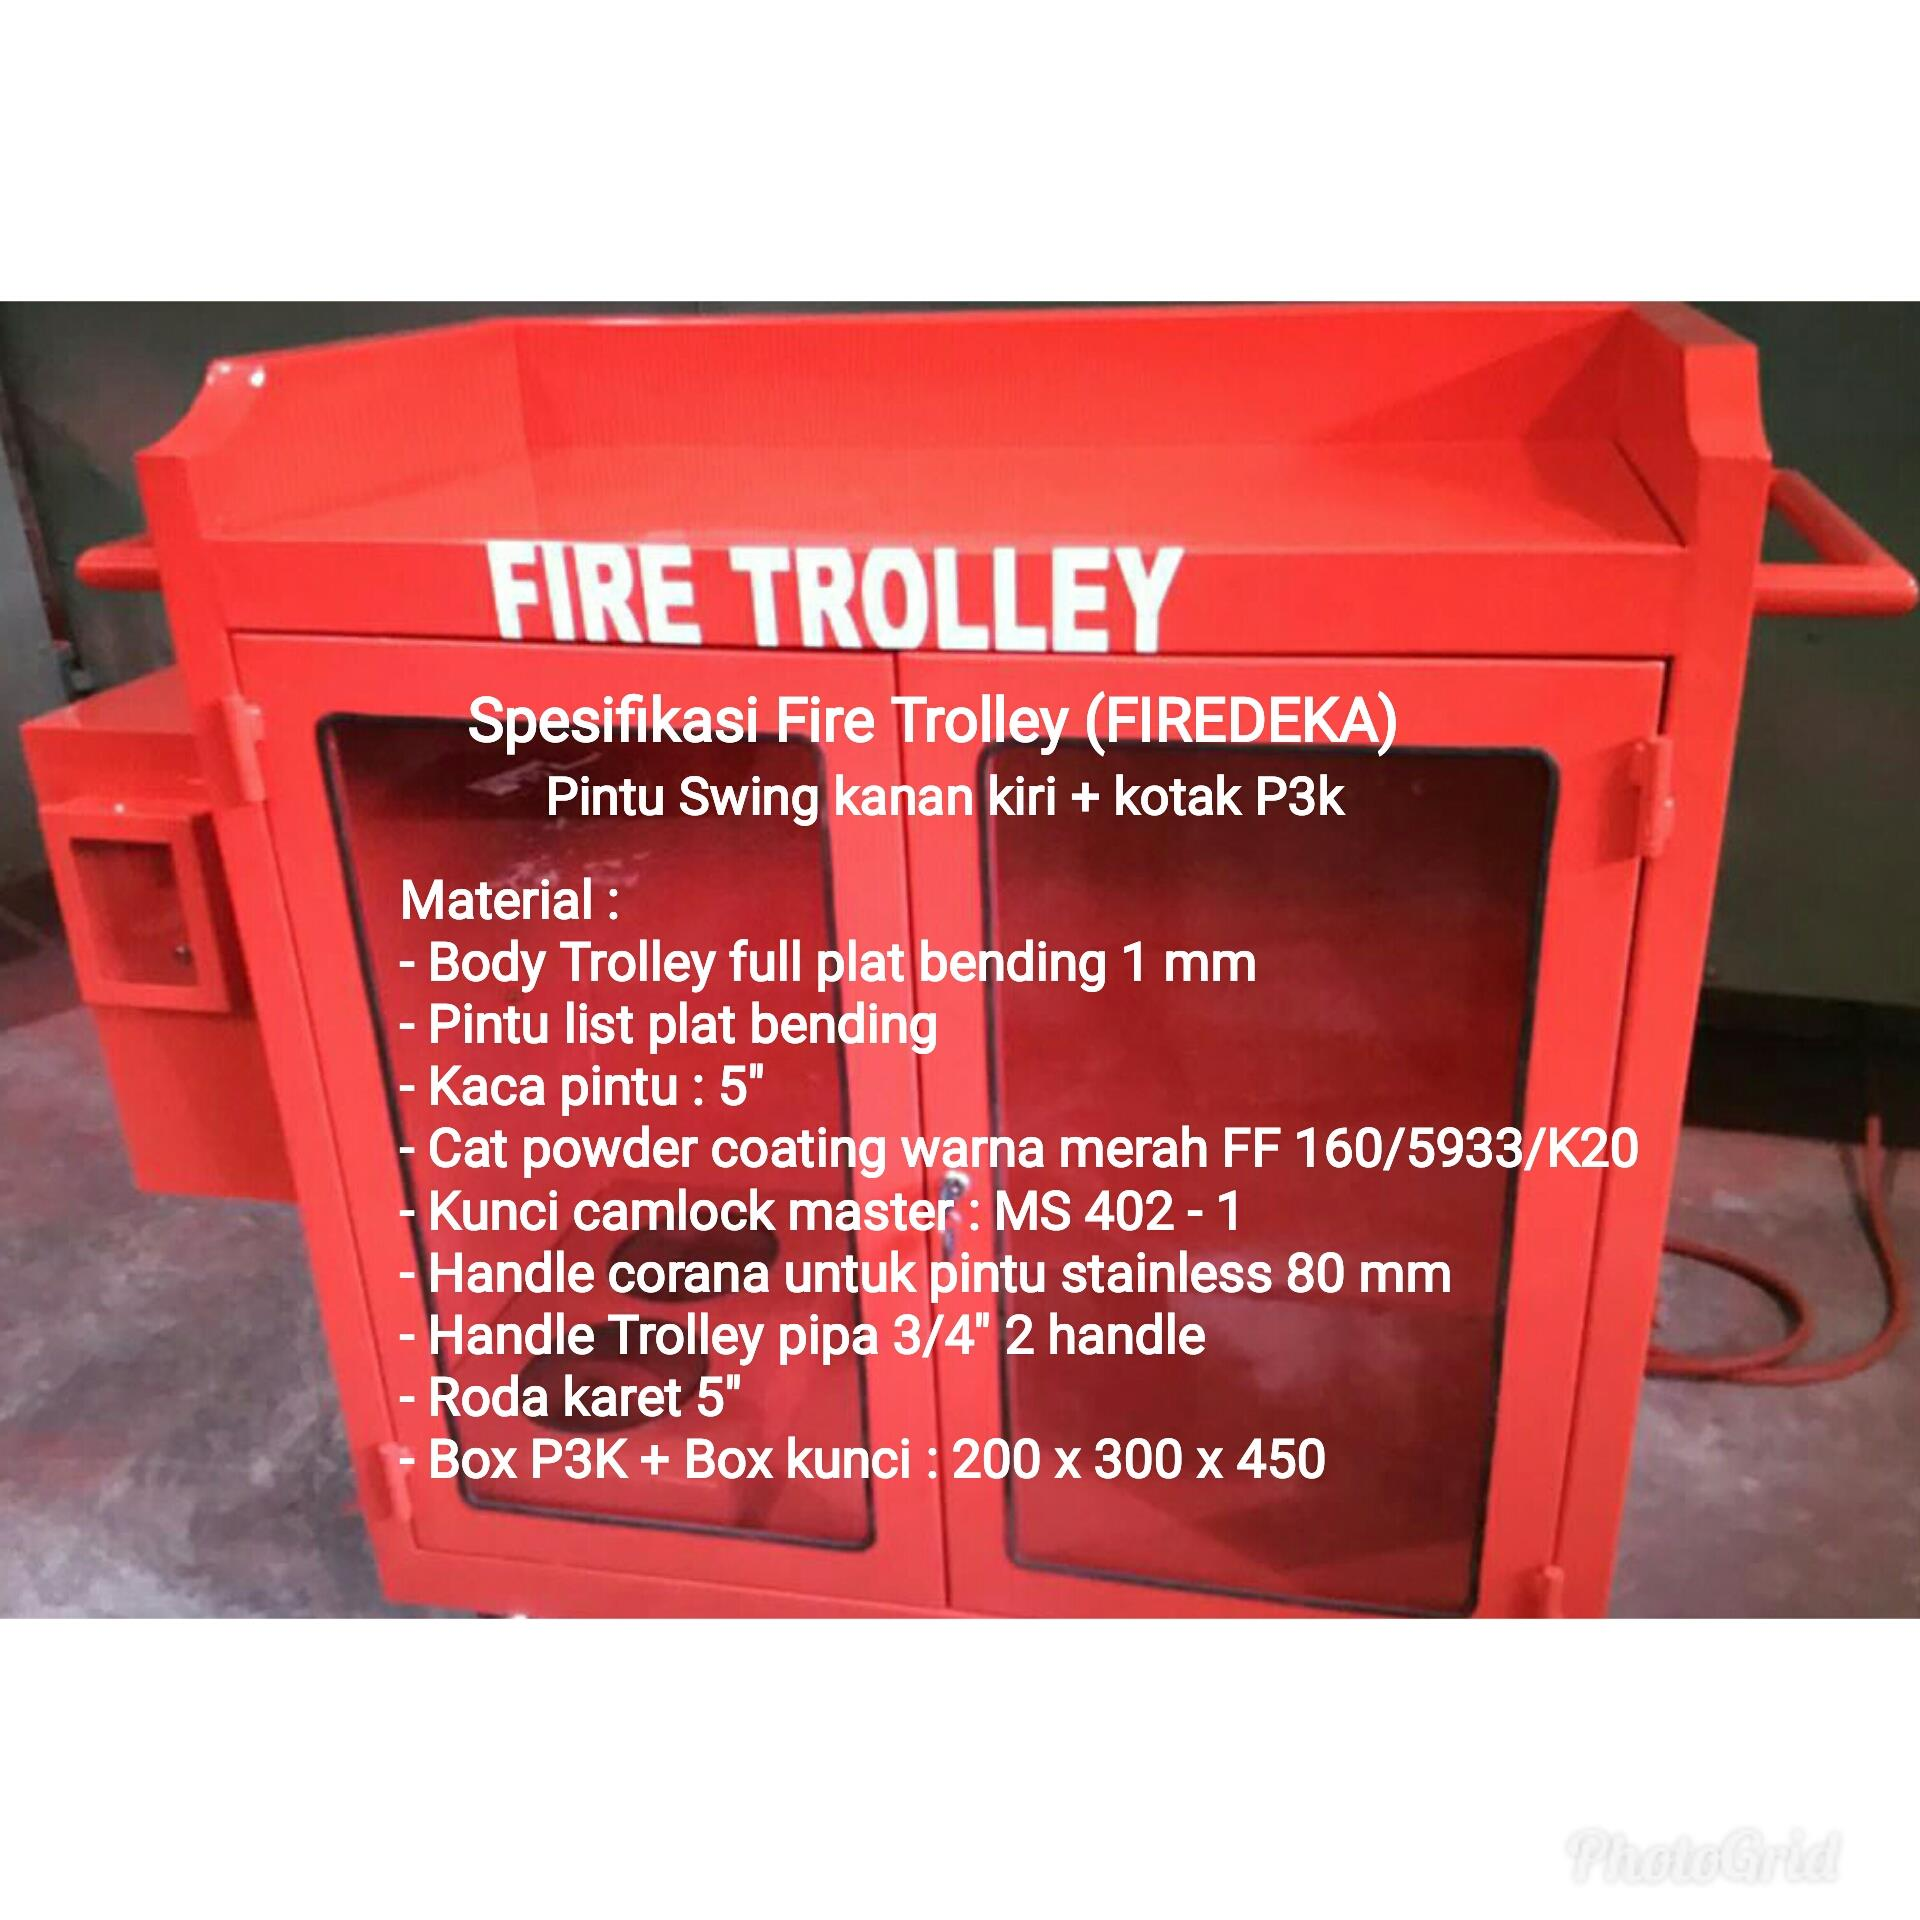 Sell Fire Trolley From Indonesia By Pt Wita Kharisma Jaya